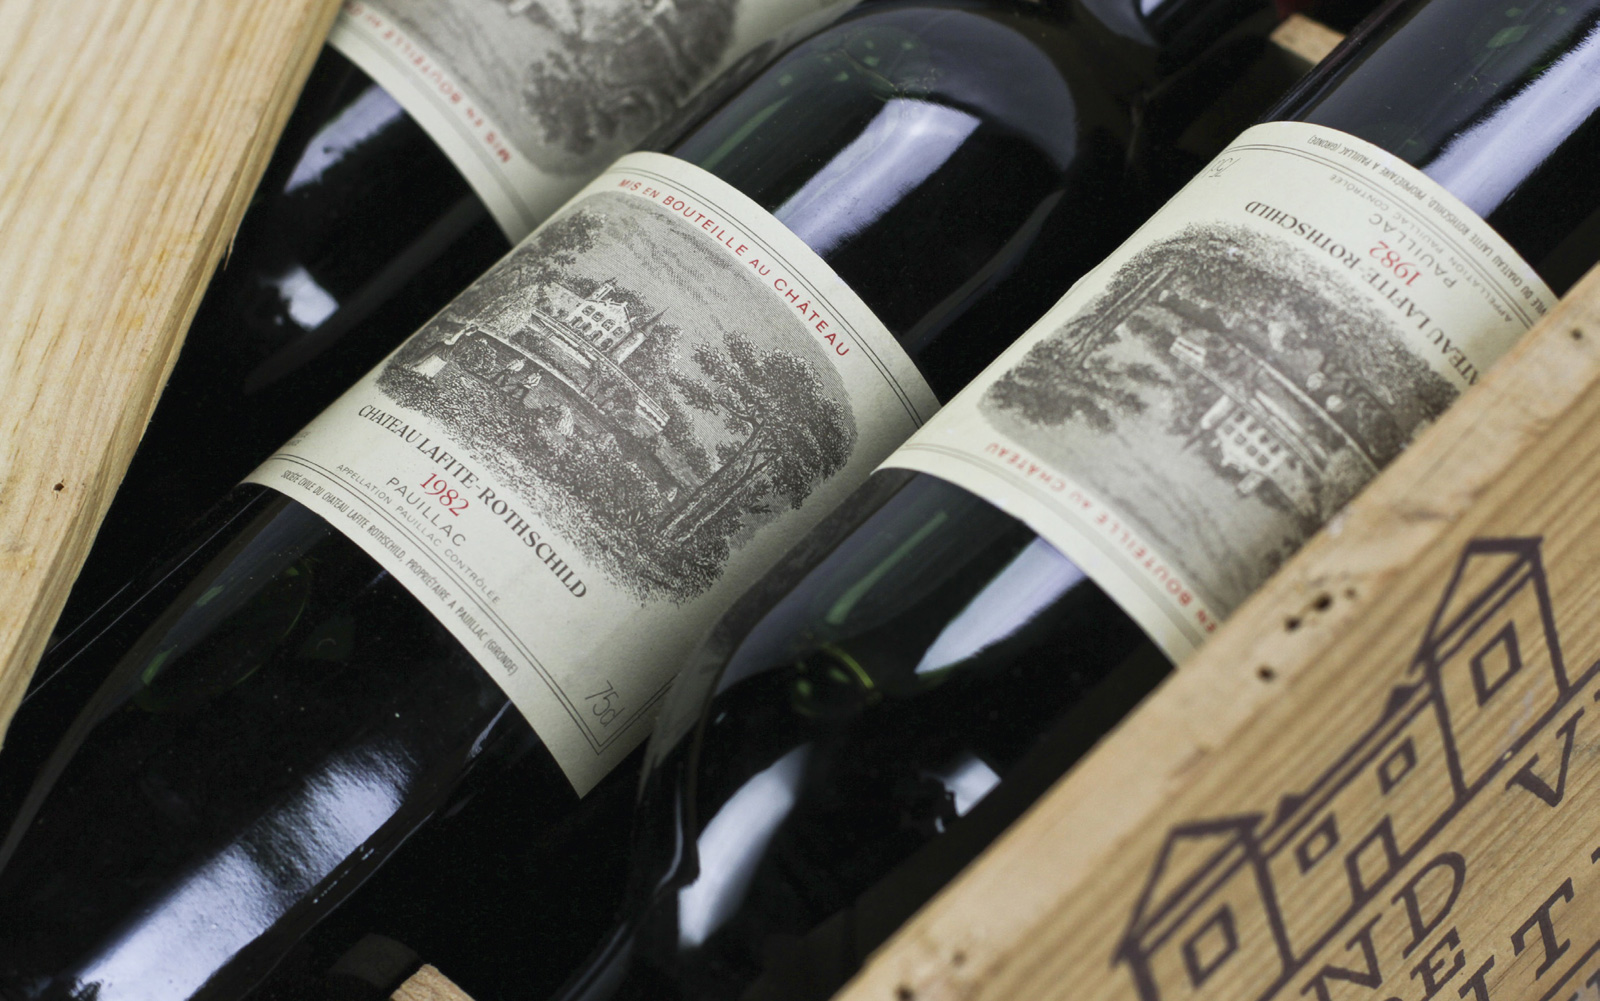 Sotheby's Says Hong Kong Spring Wine Auction May Fetch $10 Million